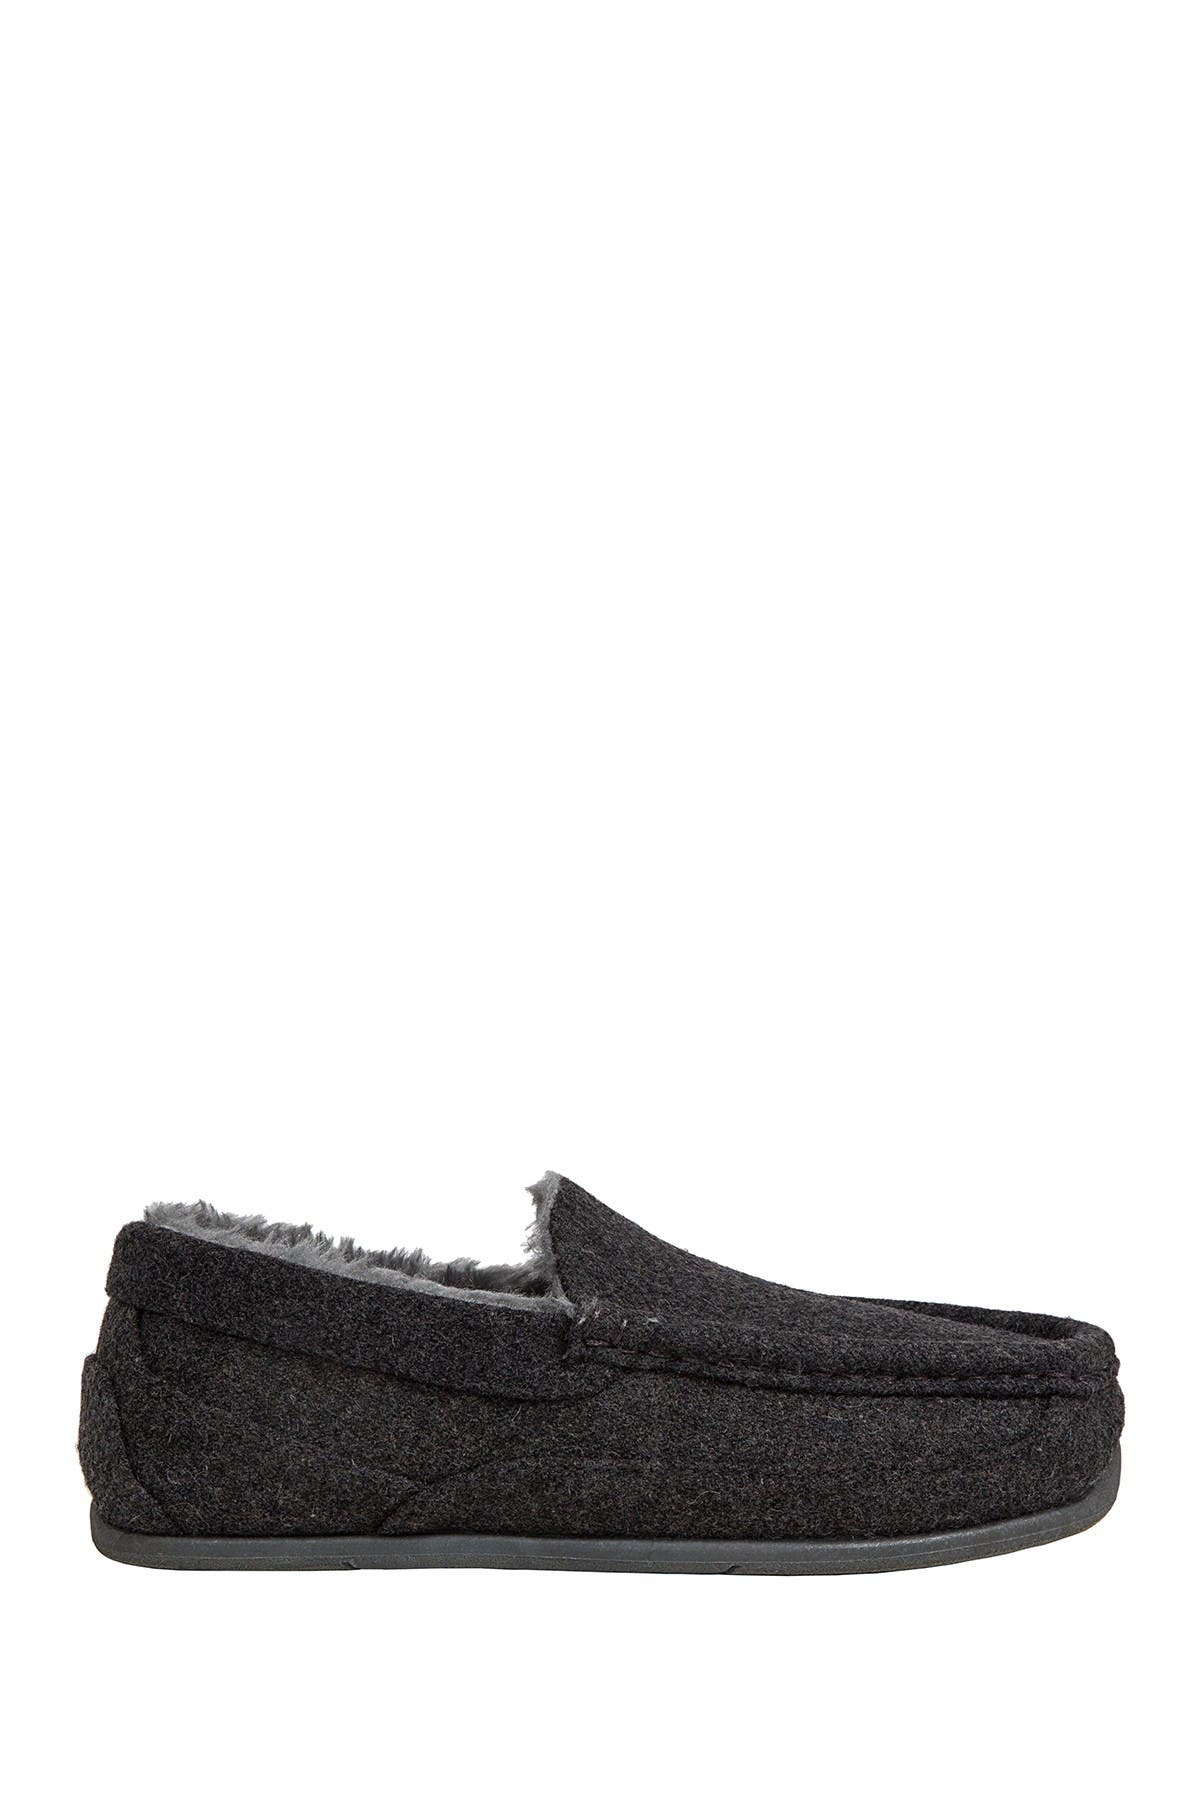 Image of Deer Stags Slipperooz Lil' Nordic Faux Fur Lined Slipper